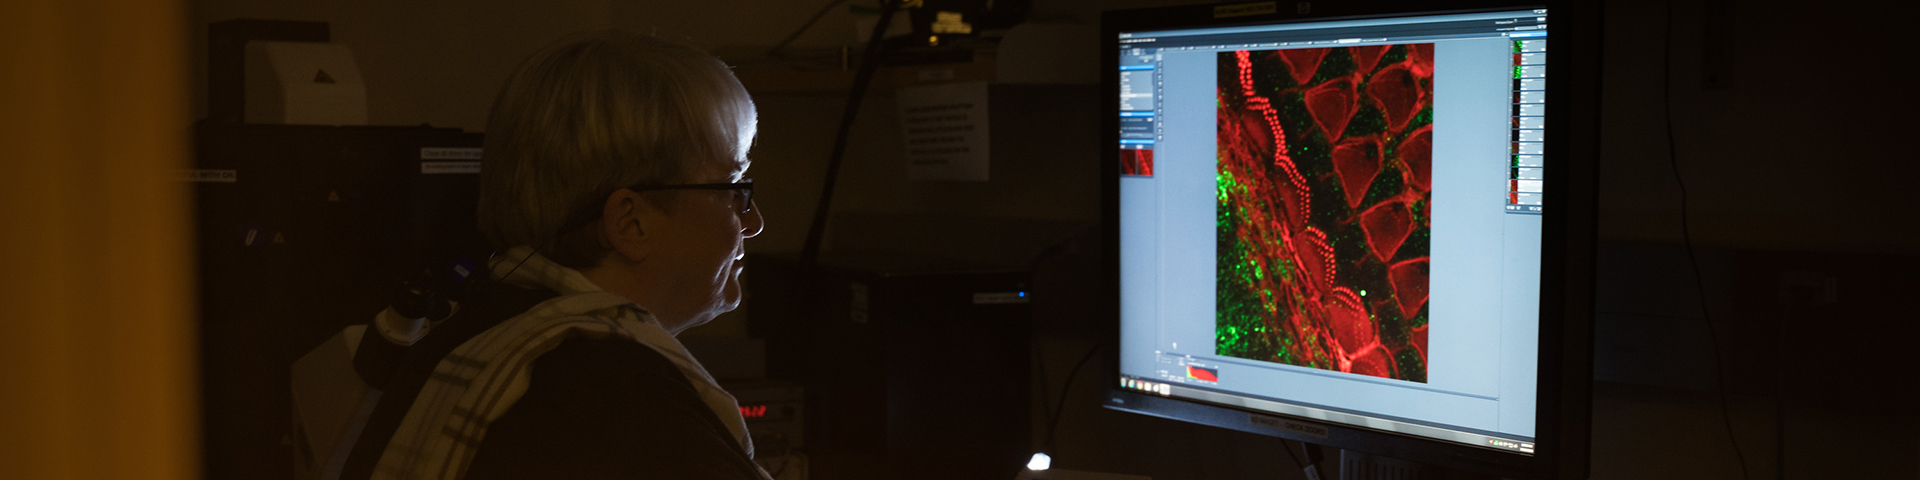 Stefanie Kaech Petrie, Ph.D., director of the Advanced Light Microscopy Core at the Jungers Center for Neuroscience Research looking at a magnified image of sensory cells for sound and balance in the inner ear.